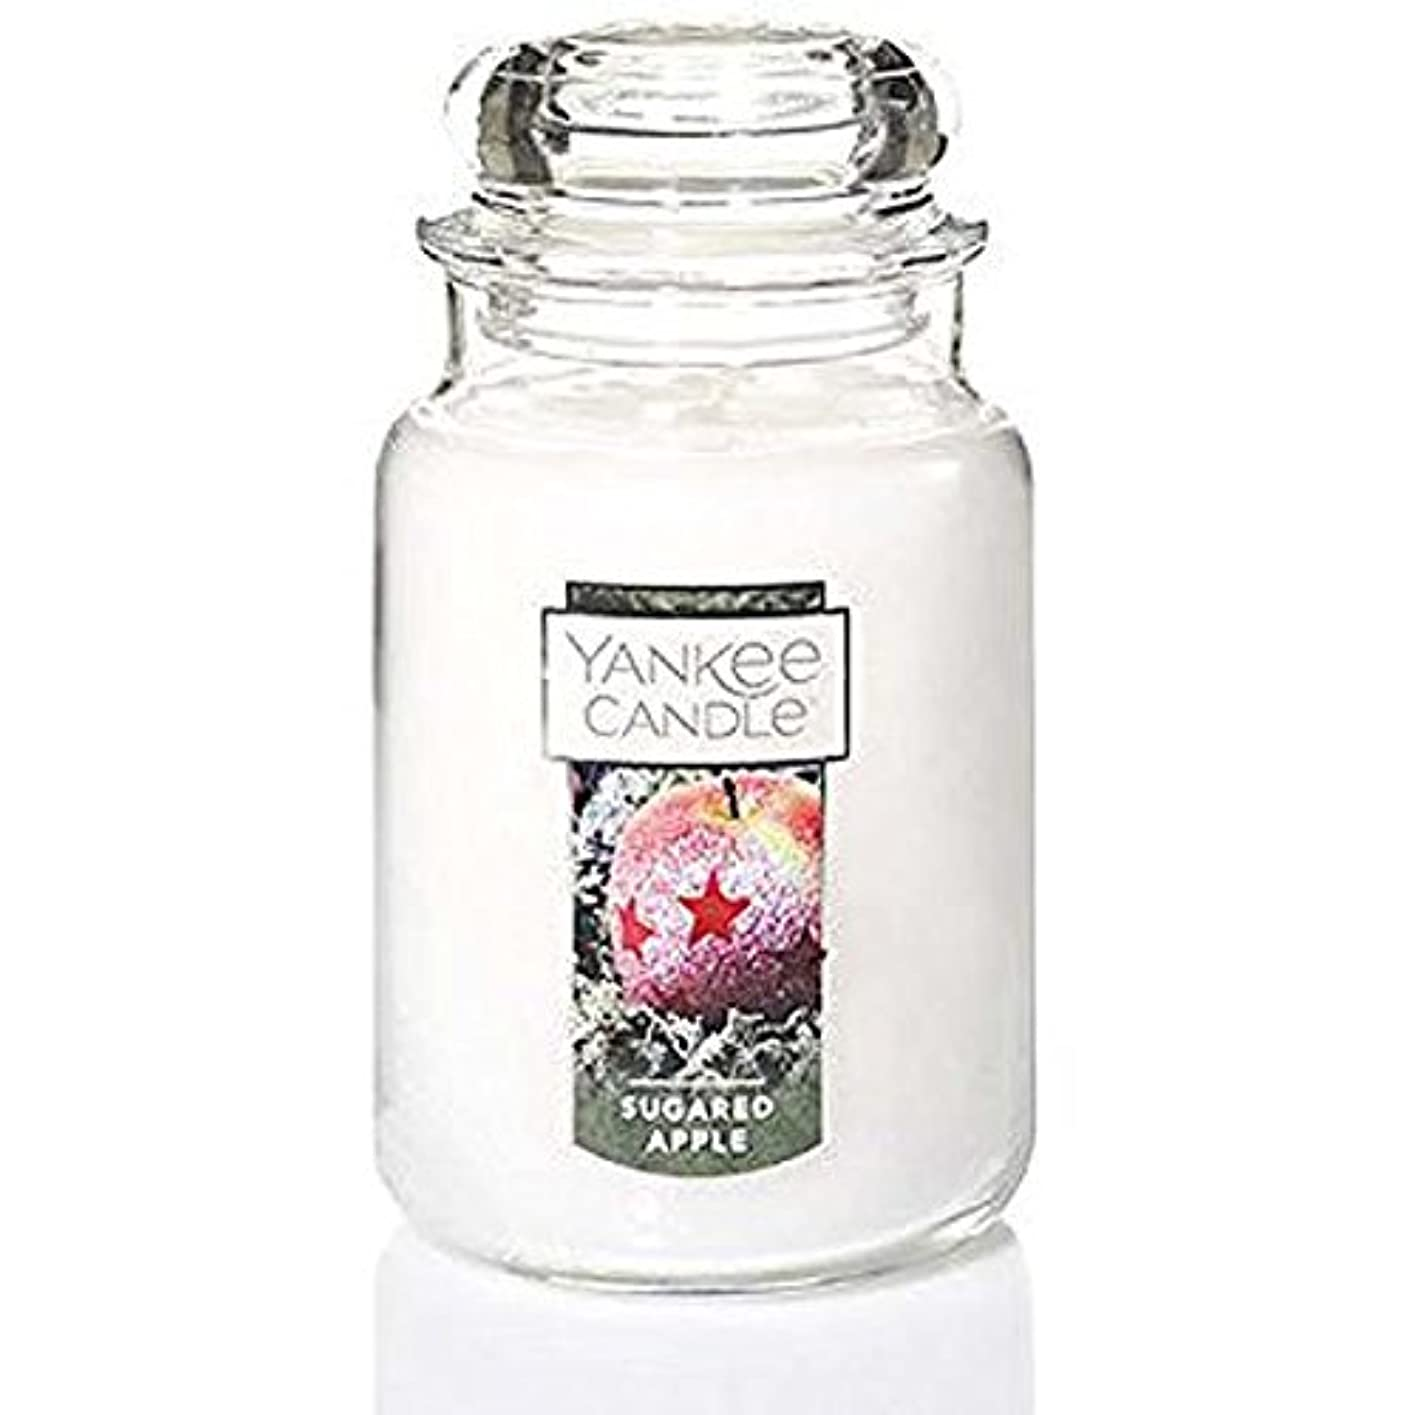 因子どれアラスカYankee Candle Sugared Apple Large Jar Candle、Festive香り